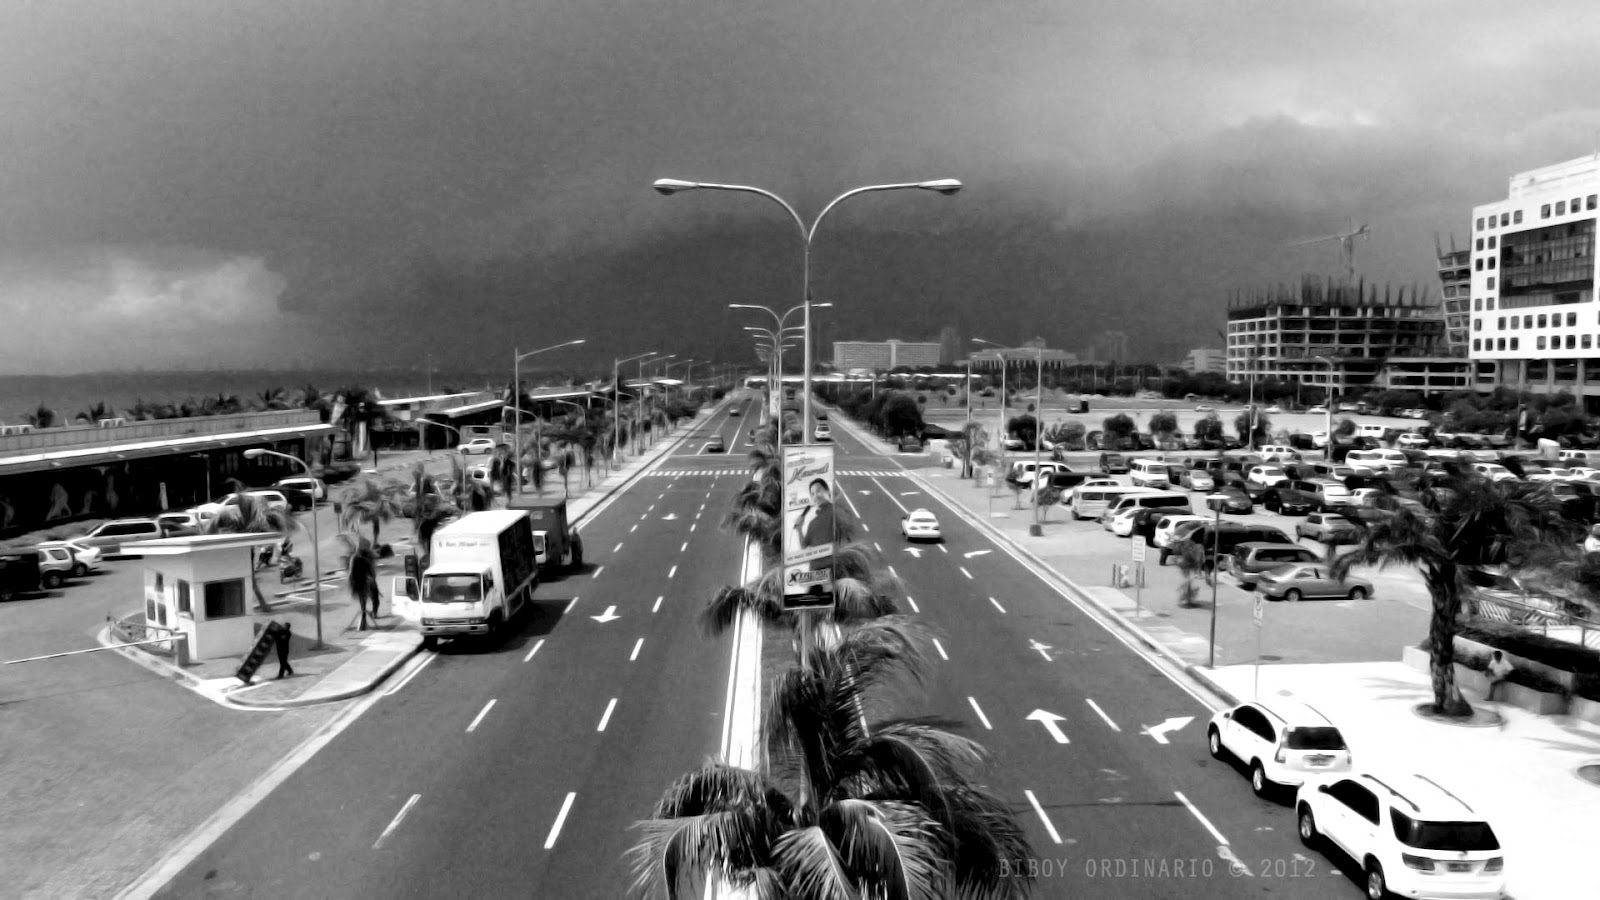 Image of SM Mall of Asia's Seaside Boulevard in black and white